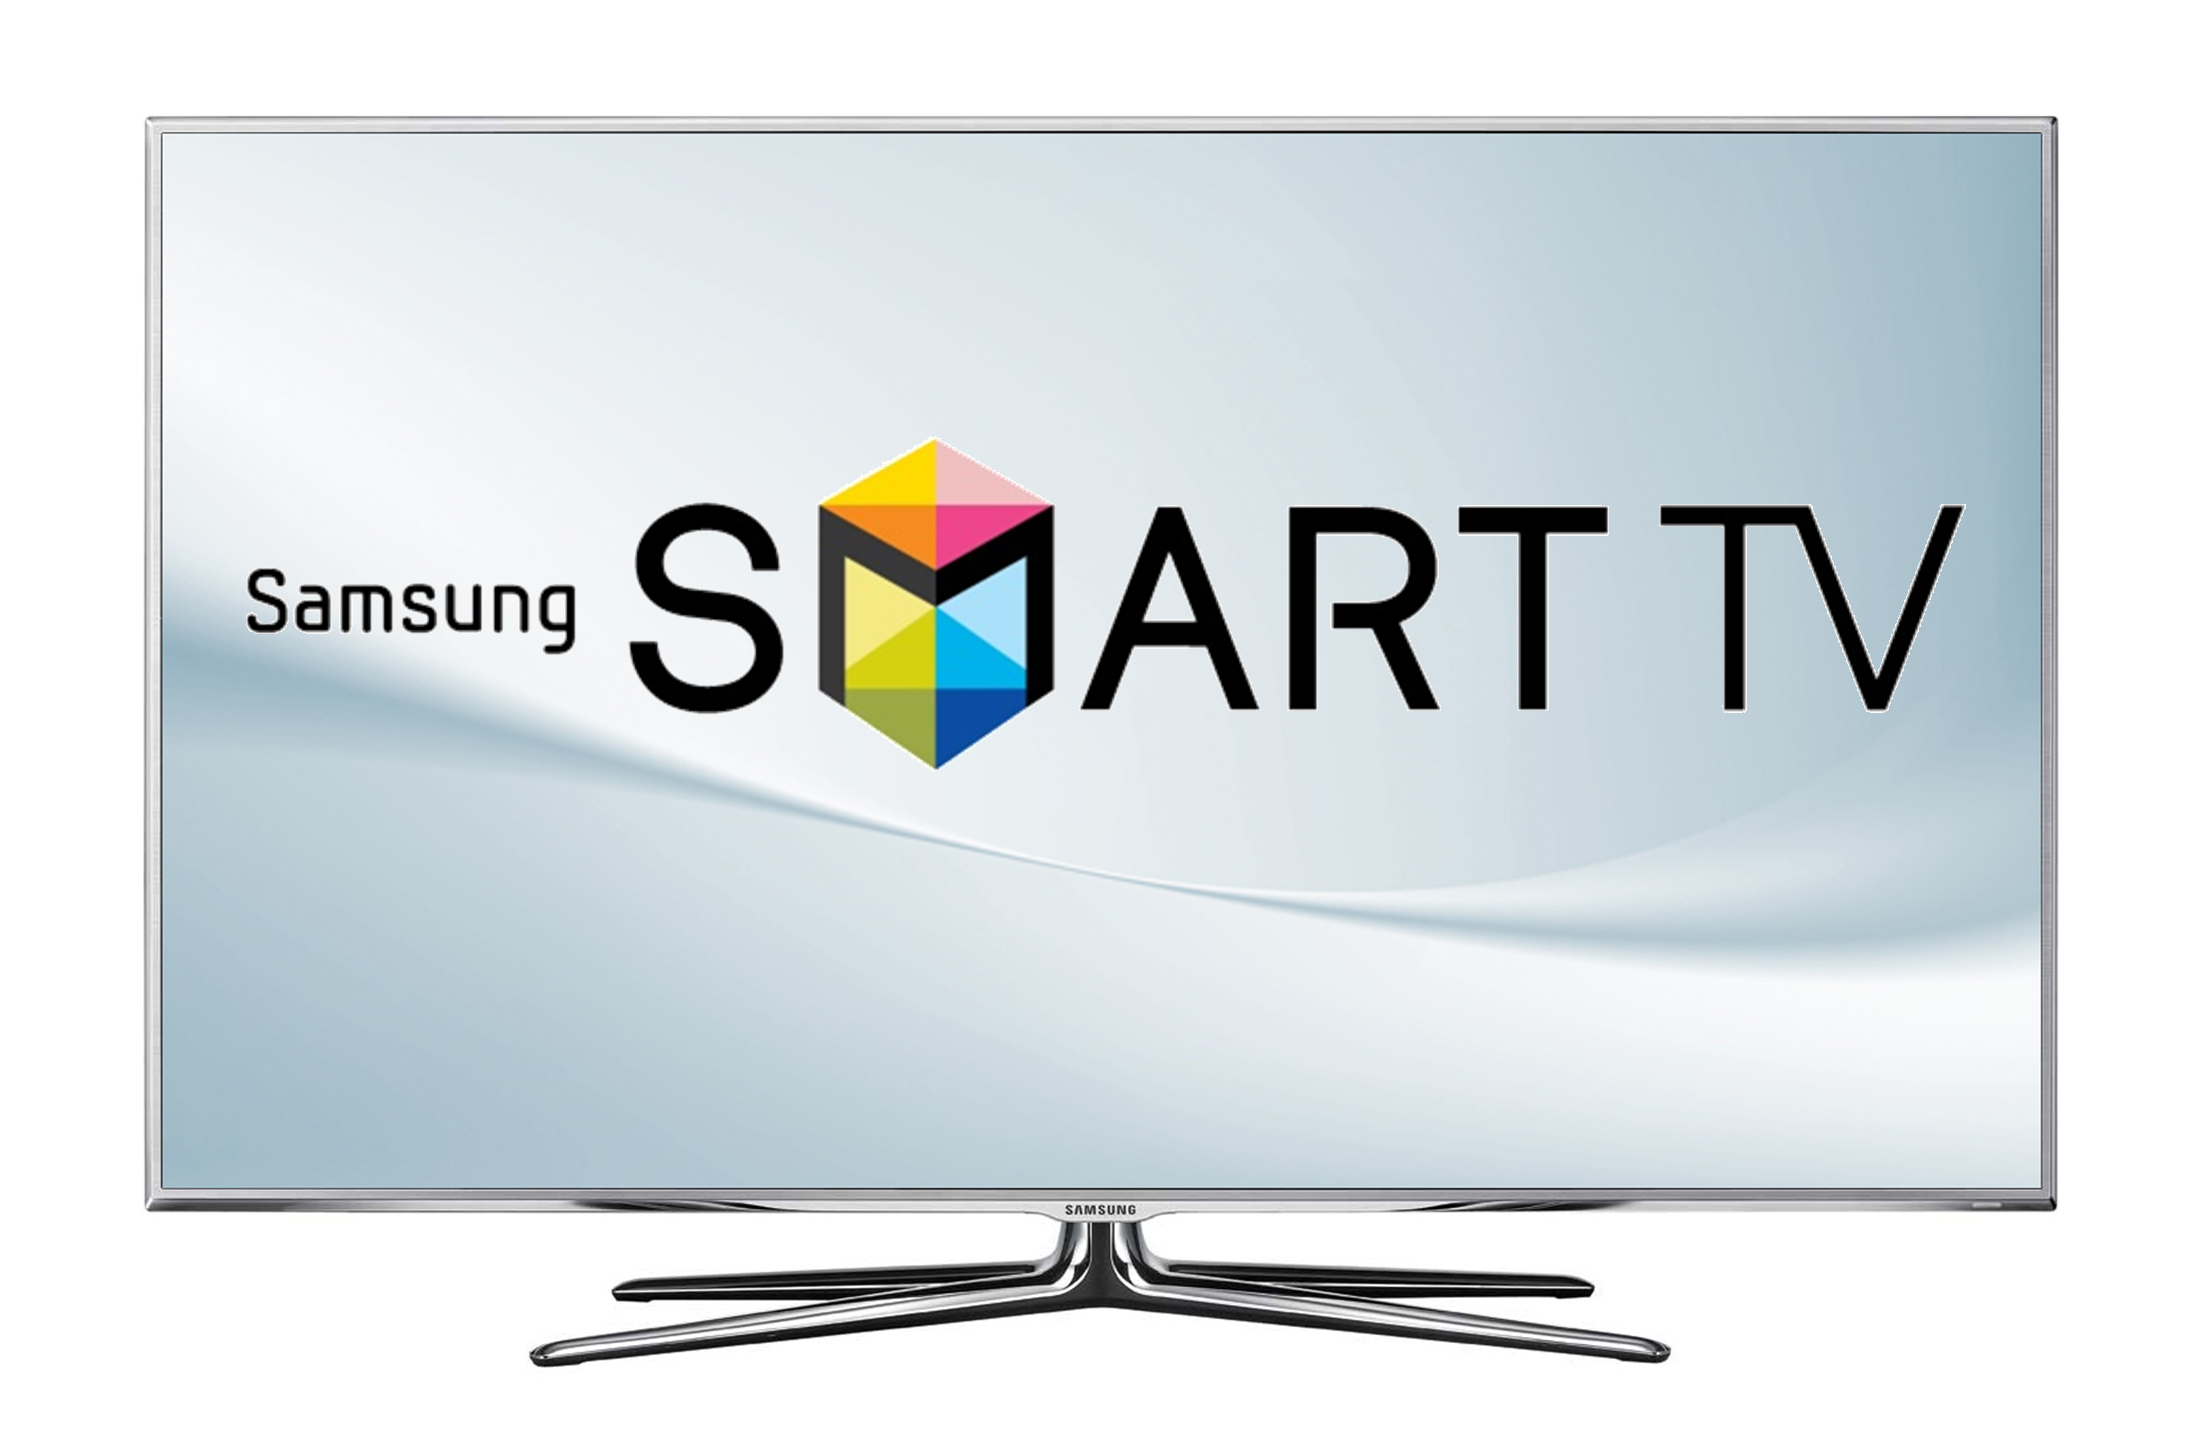 samsung 39 s smarttv privacy policy raises accusations of digital spying. Black Bedroom Furniture Sets. Home Design Ideas